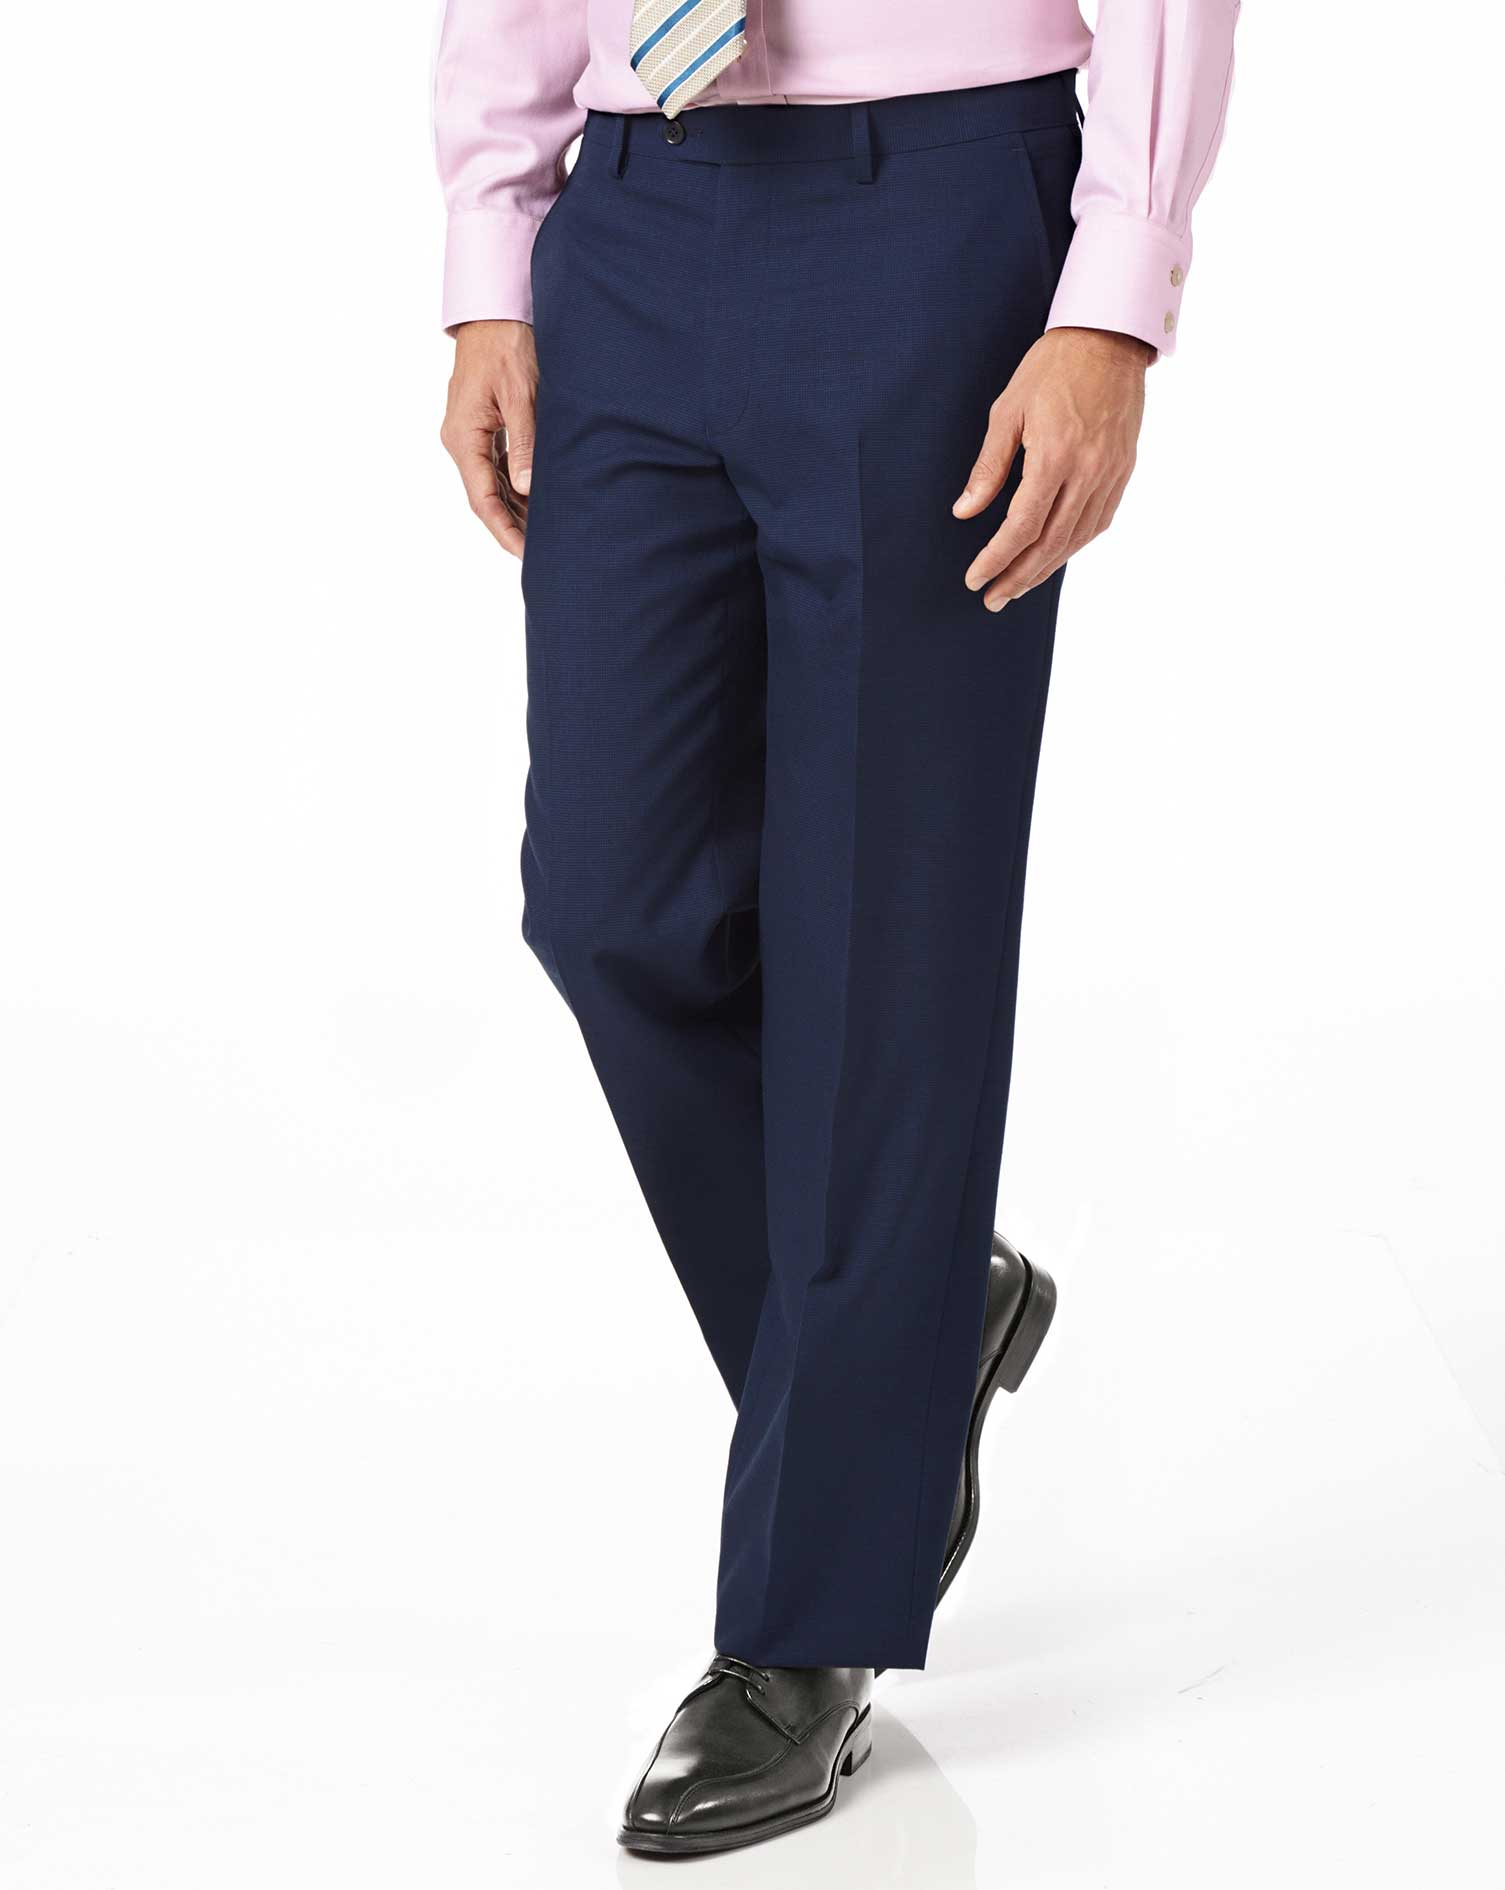 Indigo Blue Classic Fit Panama Puppytooth Business Suit Trousers Size W38 L38 by Charles Tyrwhitt